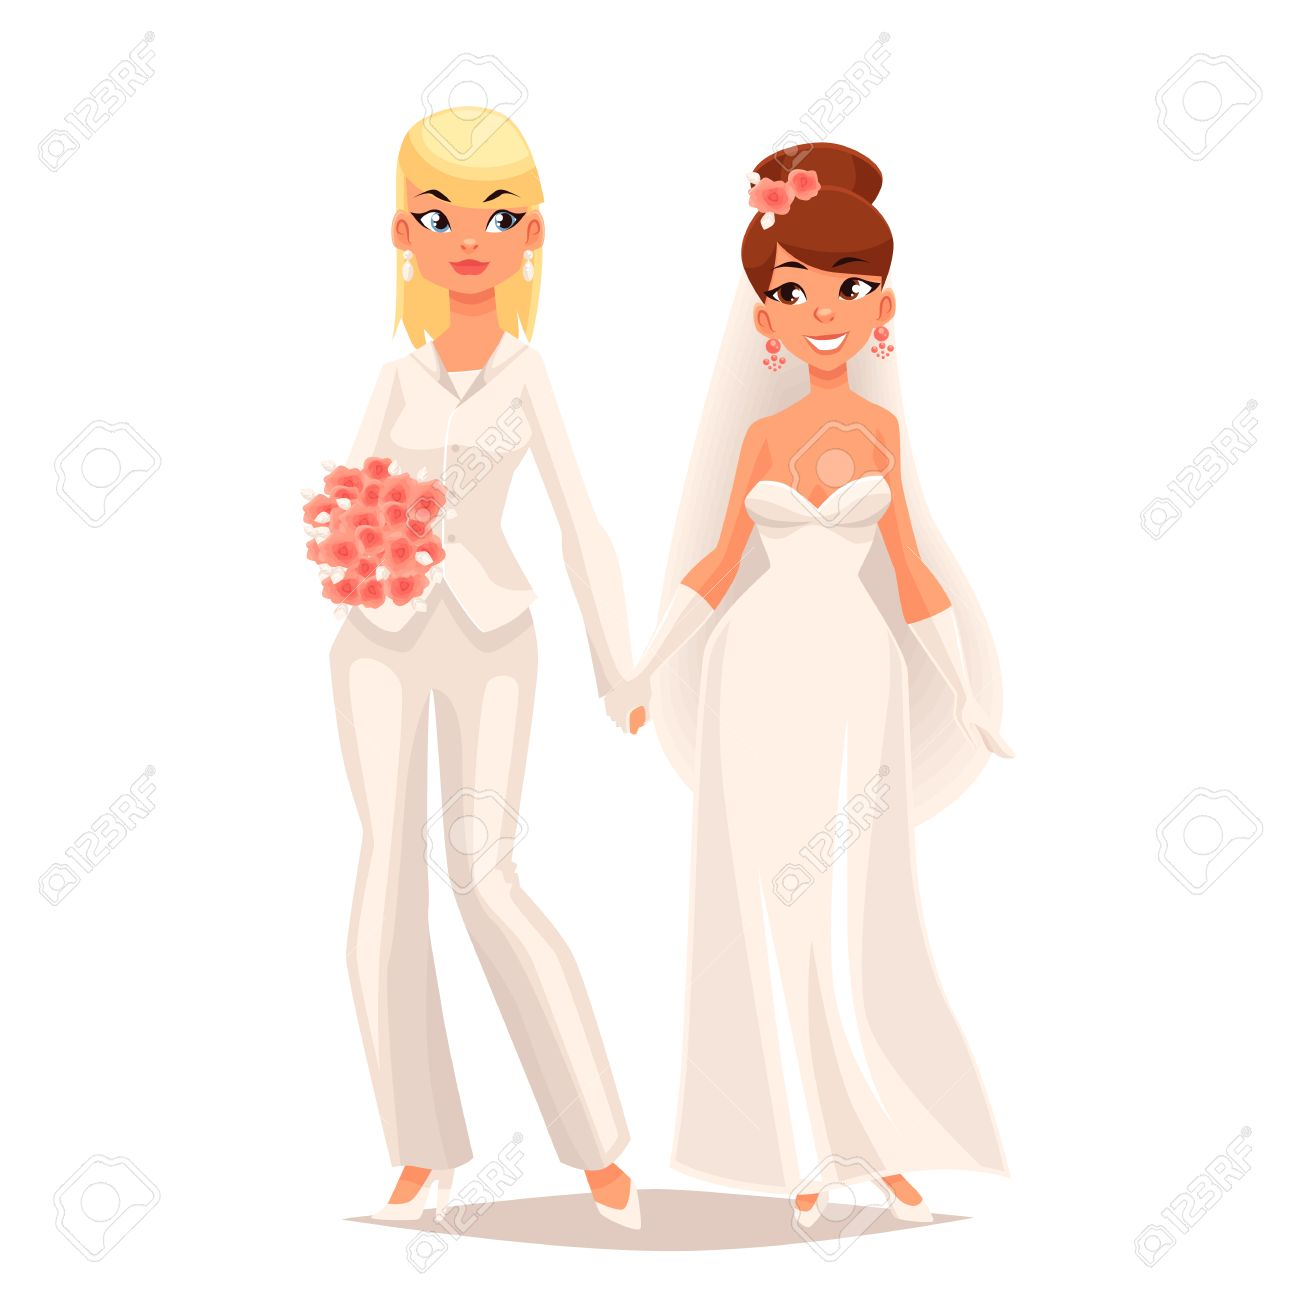 Hochzeit Comic Stock Photo